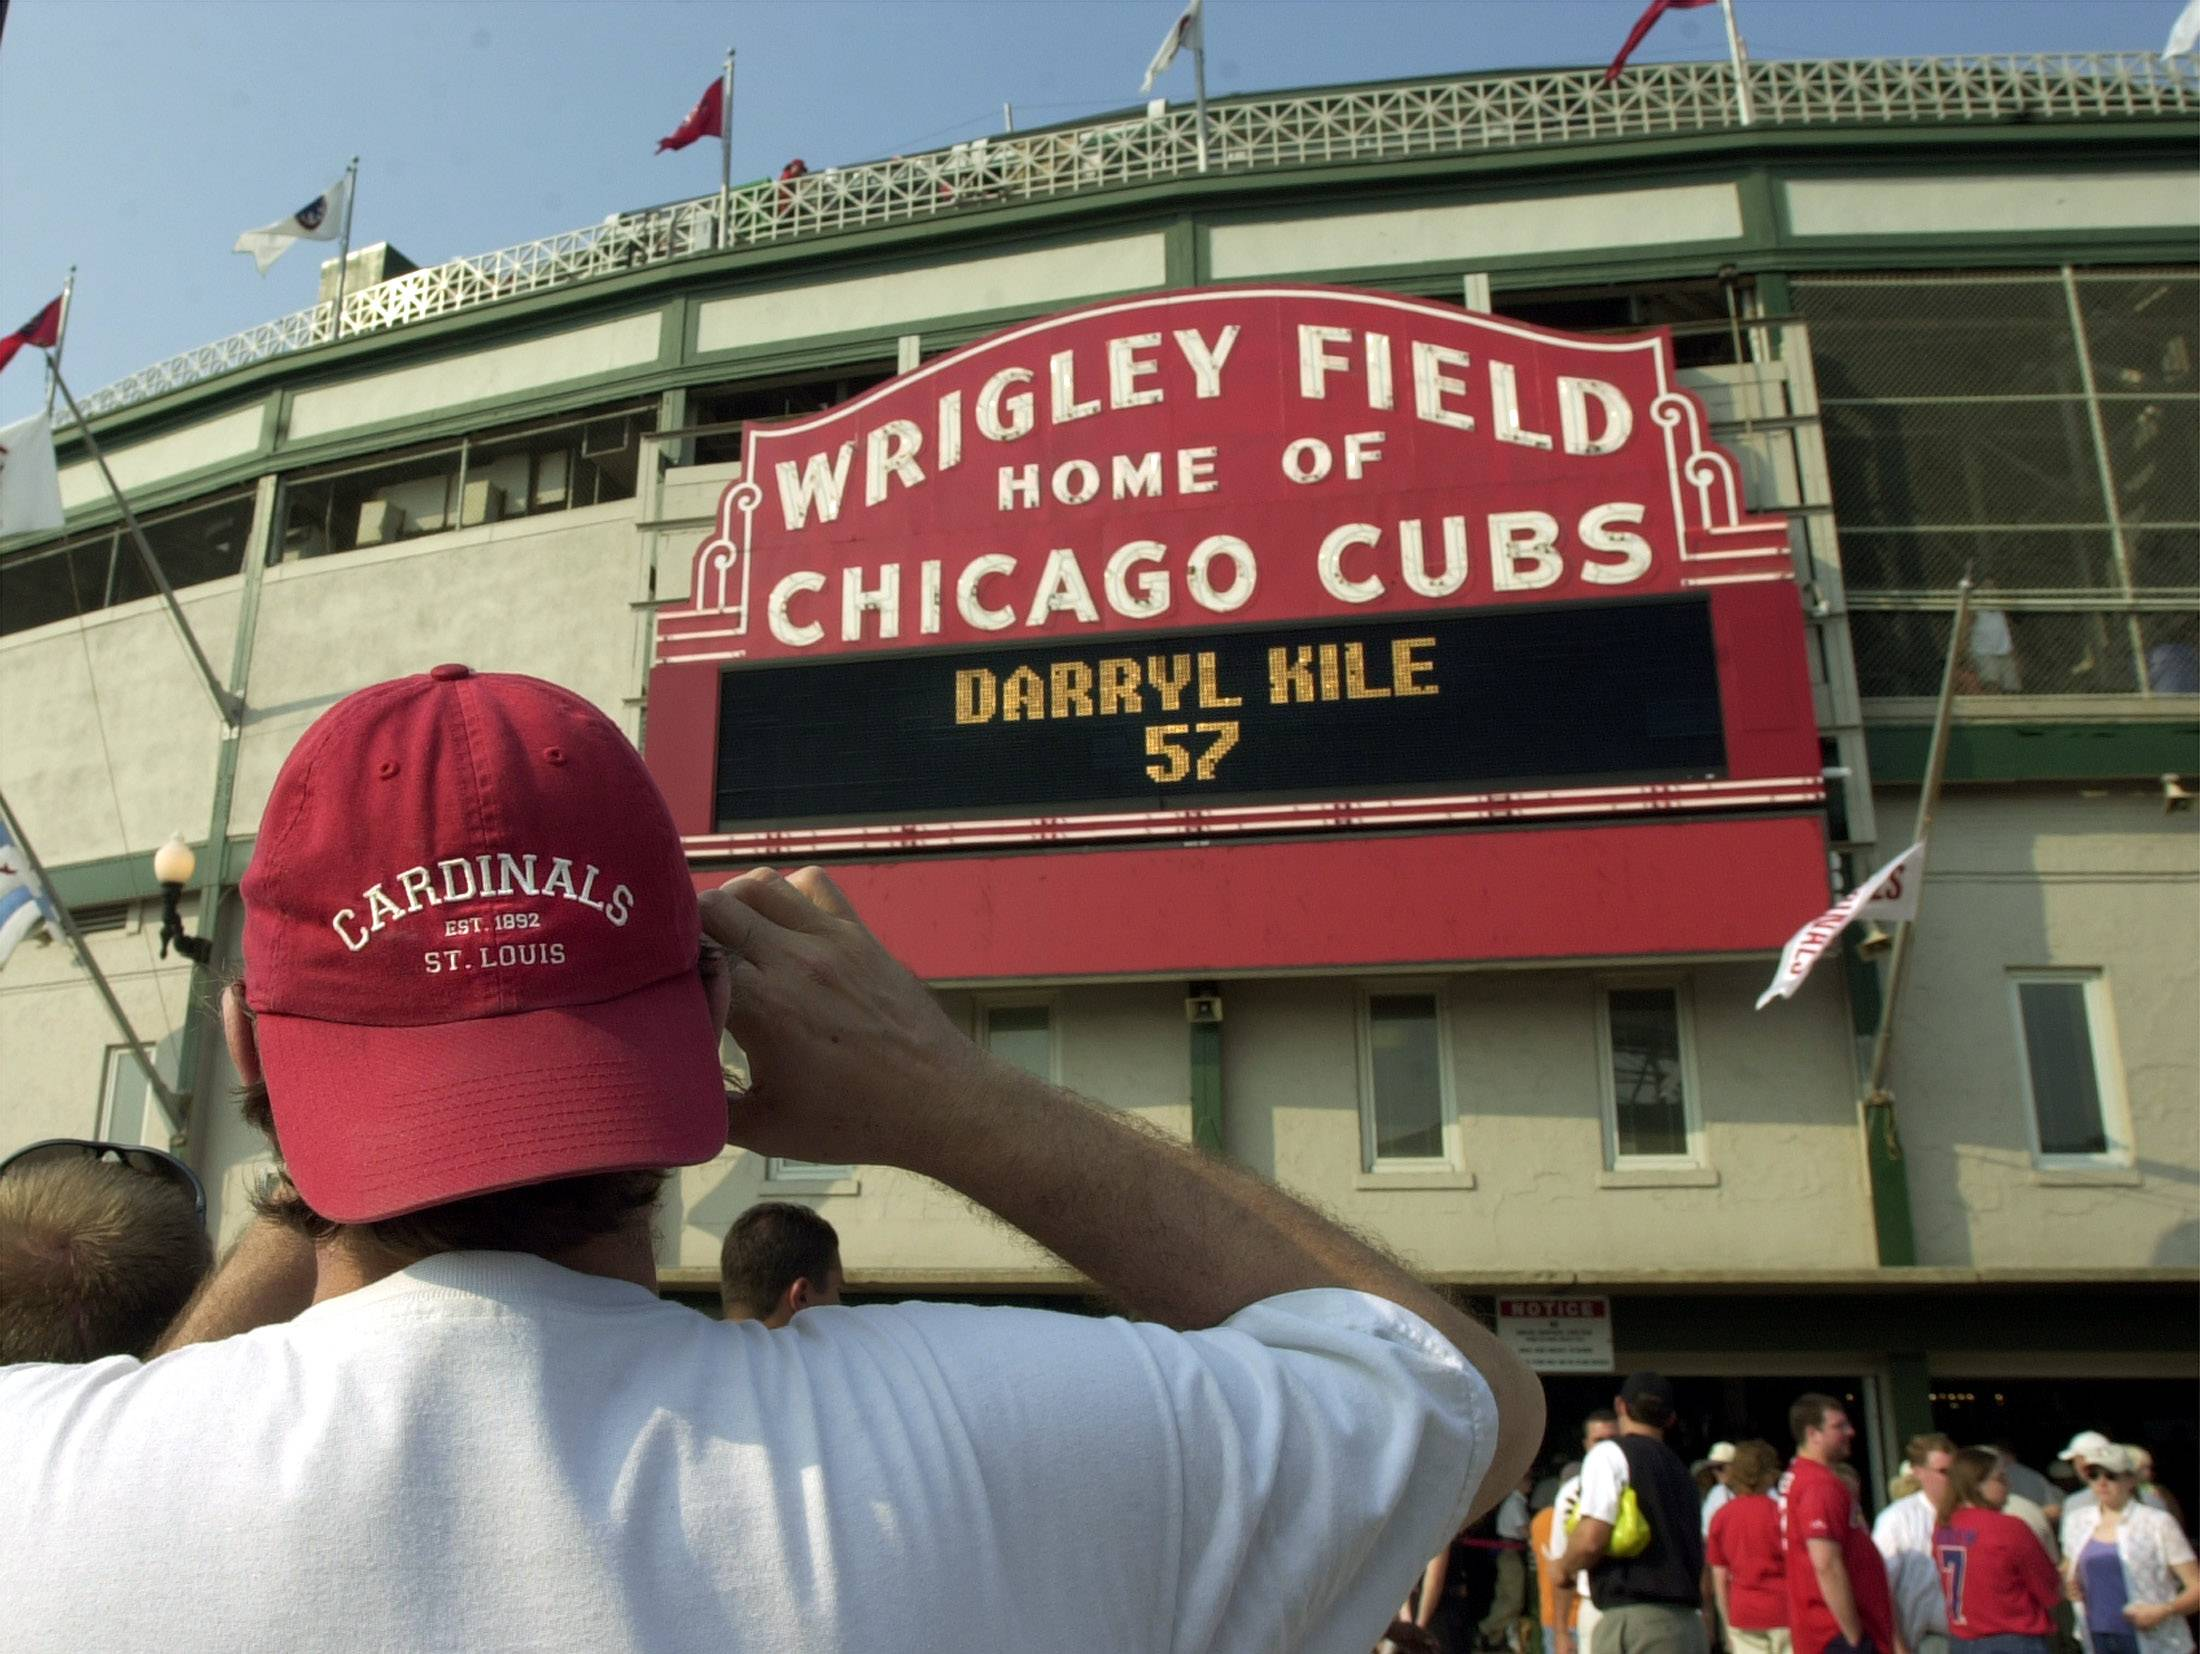 Wrigley Field: A few memories